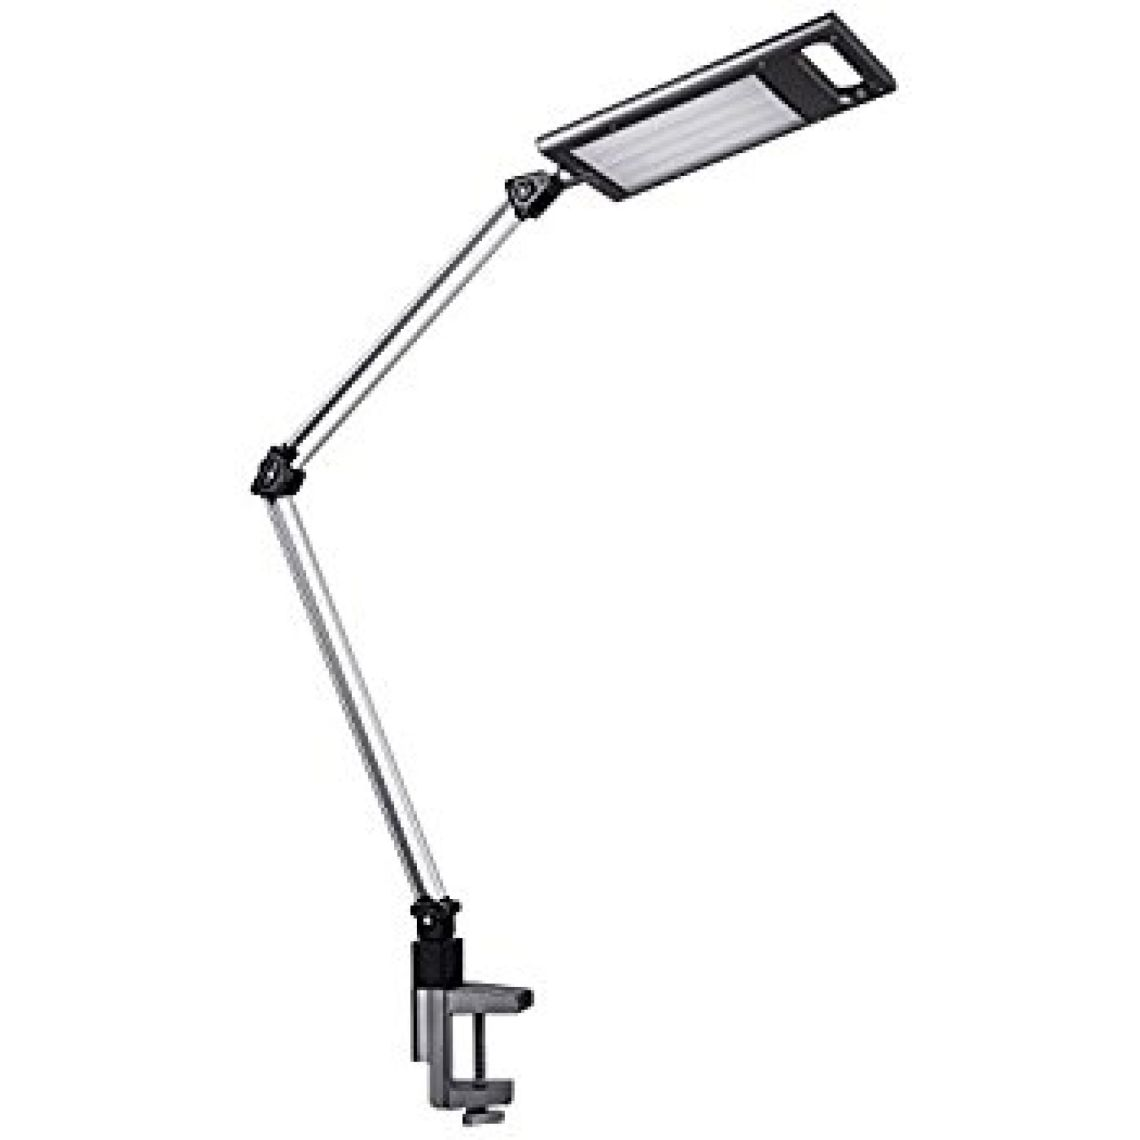 LED Desk Lamp, Aglaia Table Light / Clamp Lamp / with Metal Swing Arm ( 3 Levels of Brightness, Touch Control, Eye-Protection) Adjustable Architect Workplace / Office Light - - Amazon.com